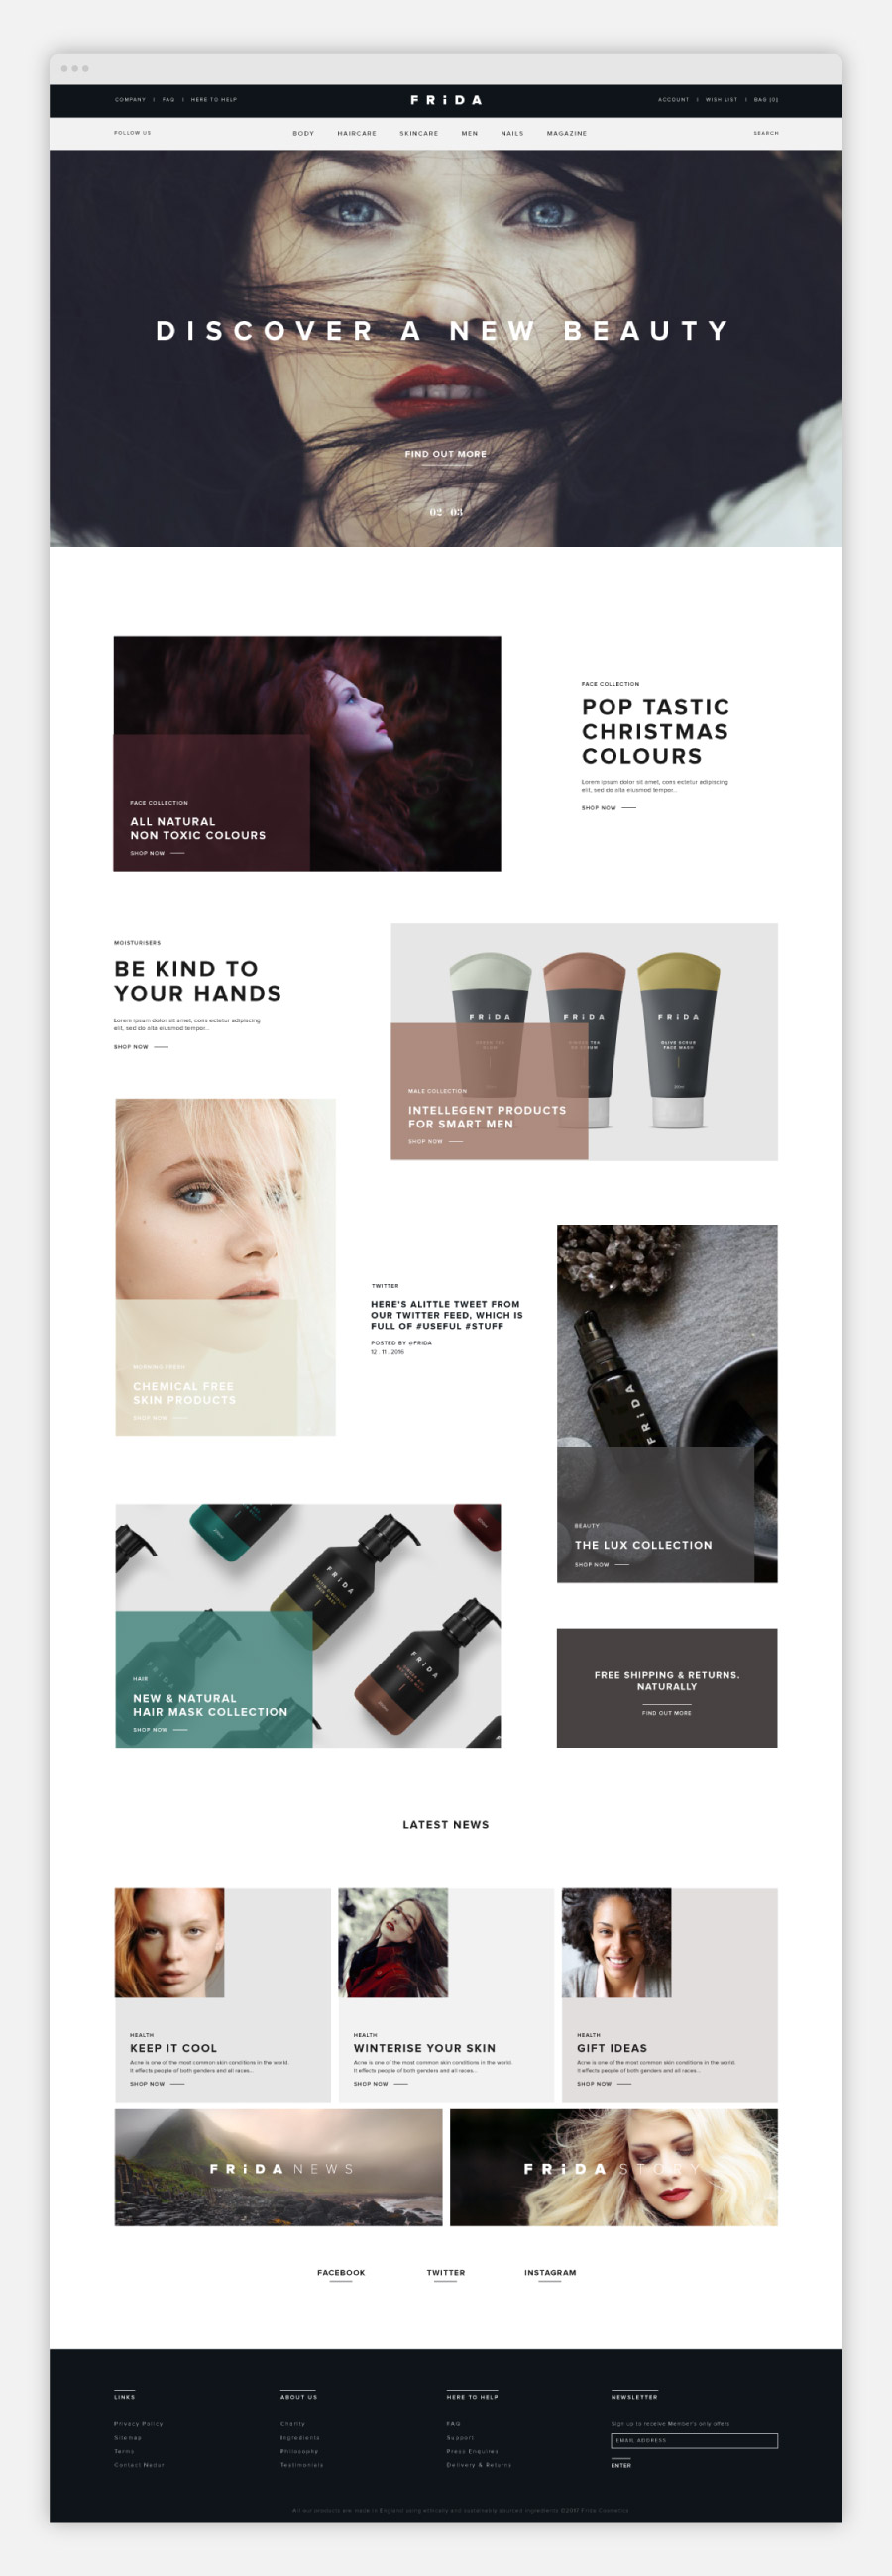 Frida Beauty Website Design